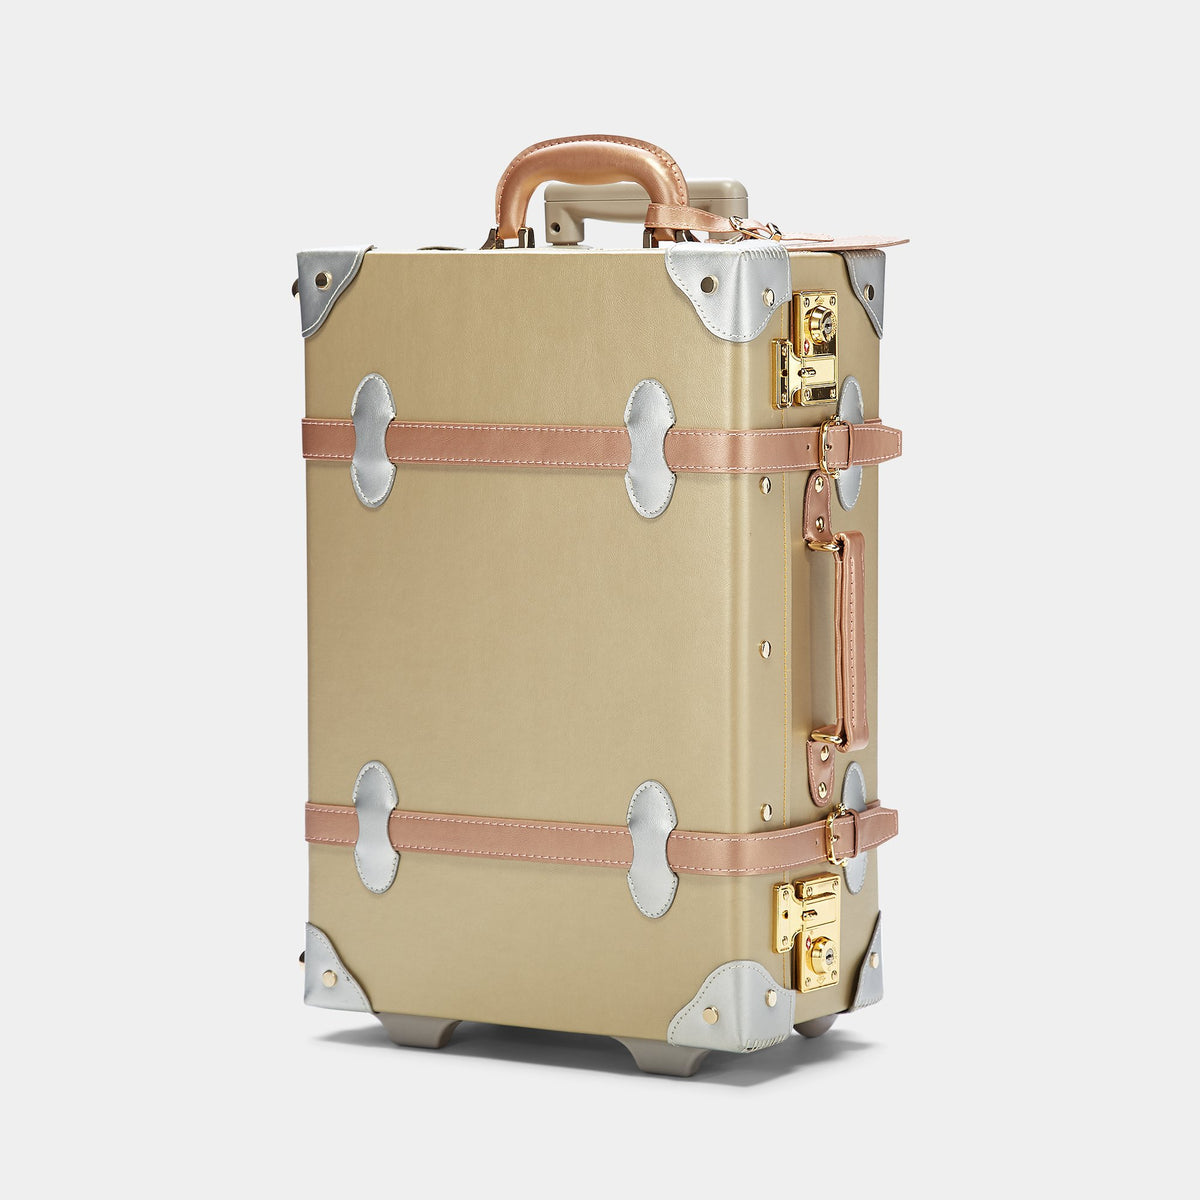 The Alchemist Carryon - Retro-Style Cabin Luggage - Exterior Front